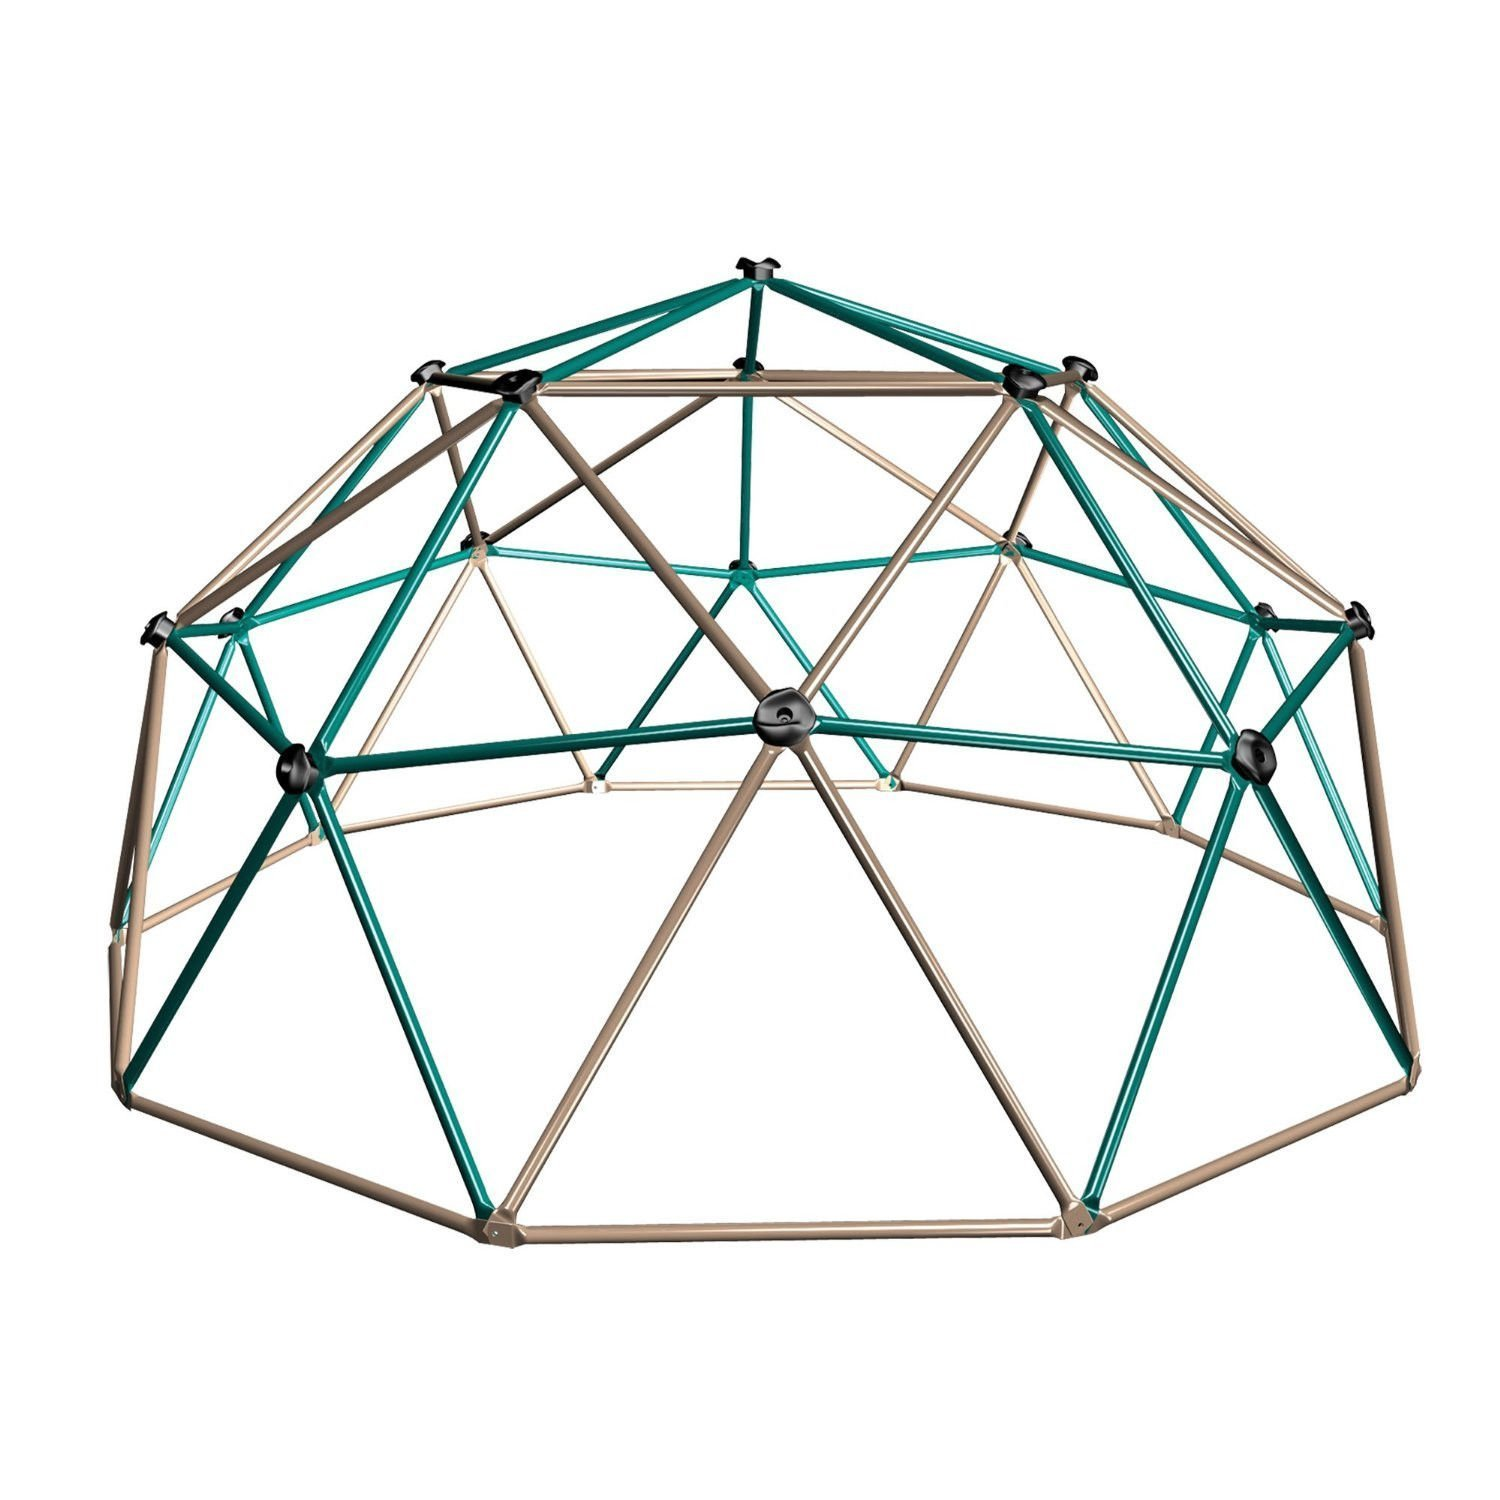 Supreme Savers Easy Outdoor Space Dome Climber Playset for Kids Gym Fun Playsets Backyard Playground Play Climbers Climbing Sports Toy Set New by Supreme Savers